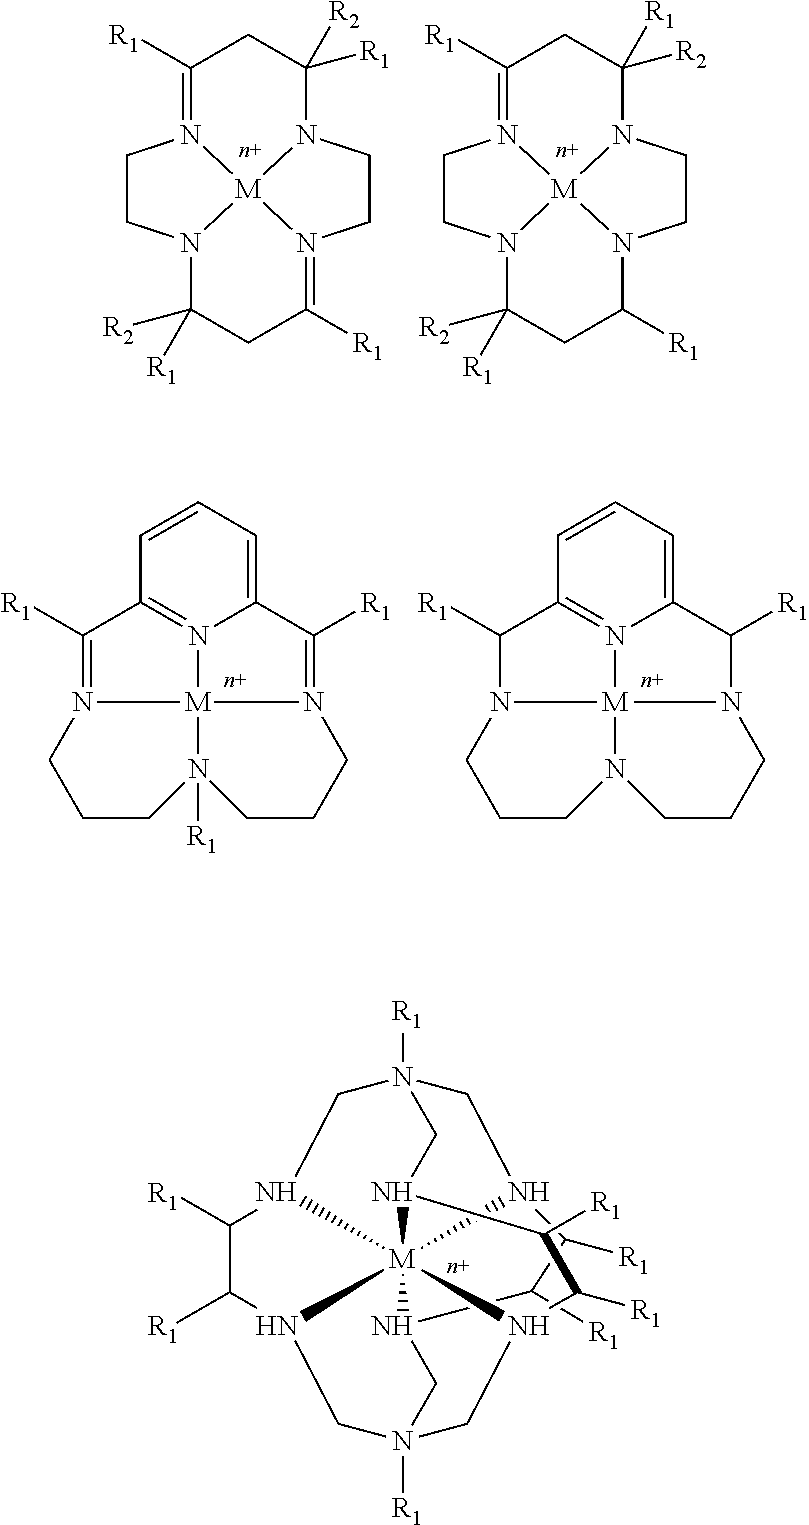 Metal amine imine pyridine plexes having the following formulaes